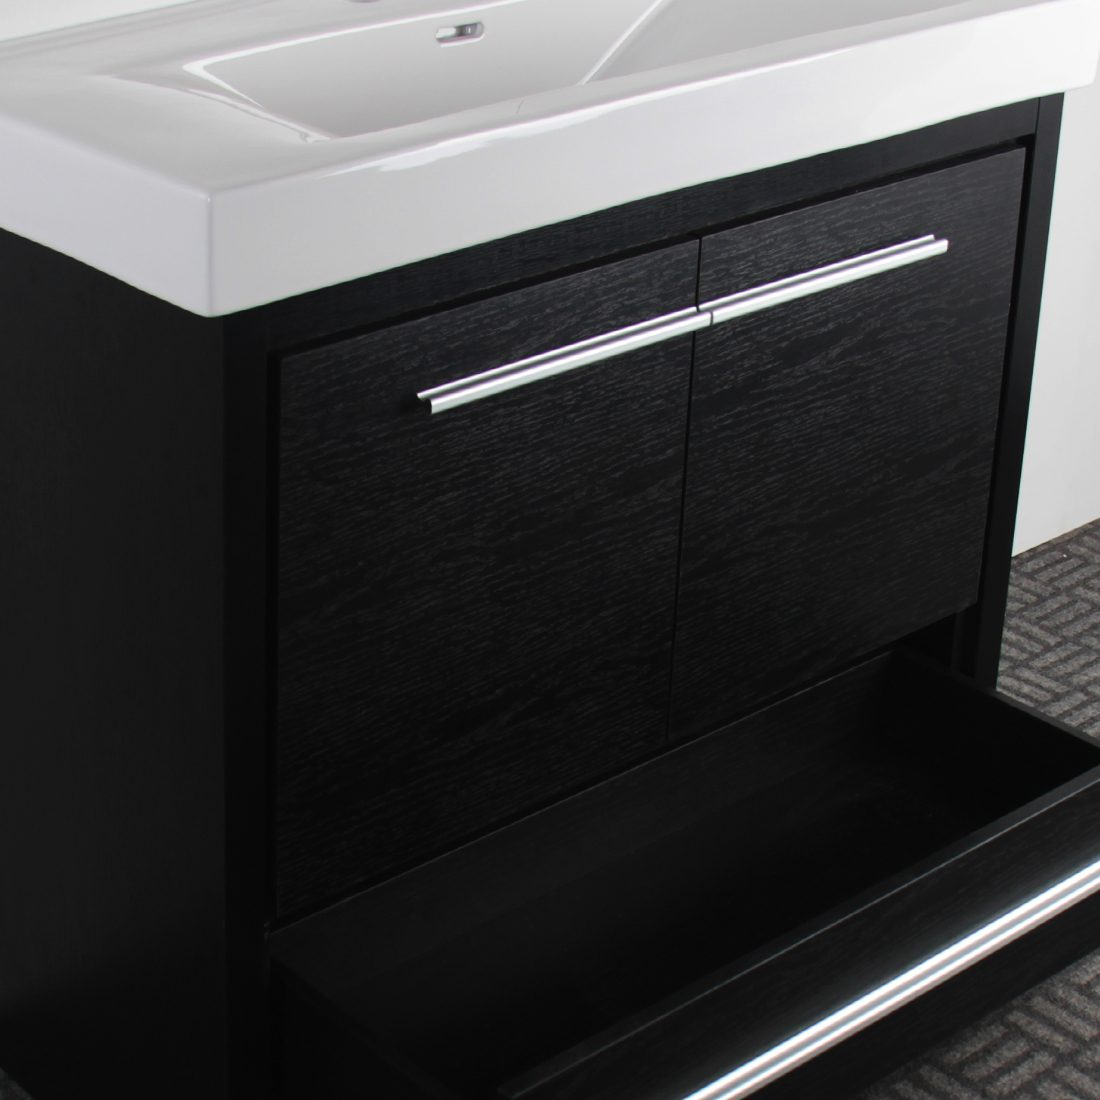 Romali 36inch Vanity Wooden Black Inside View